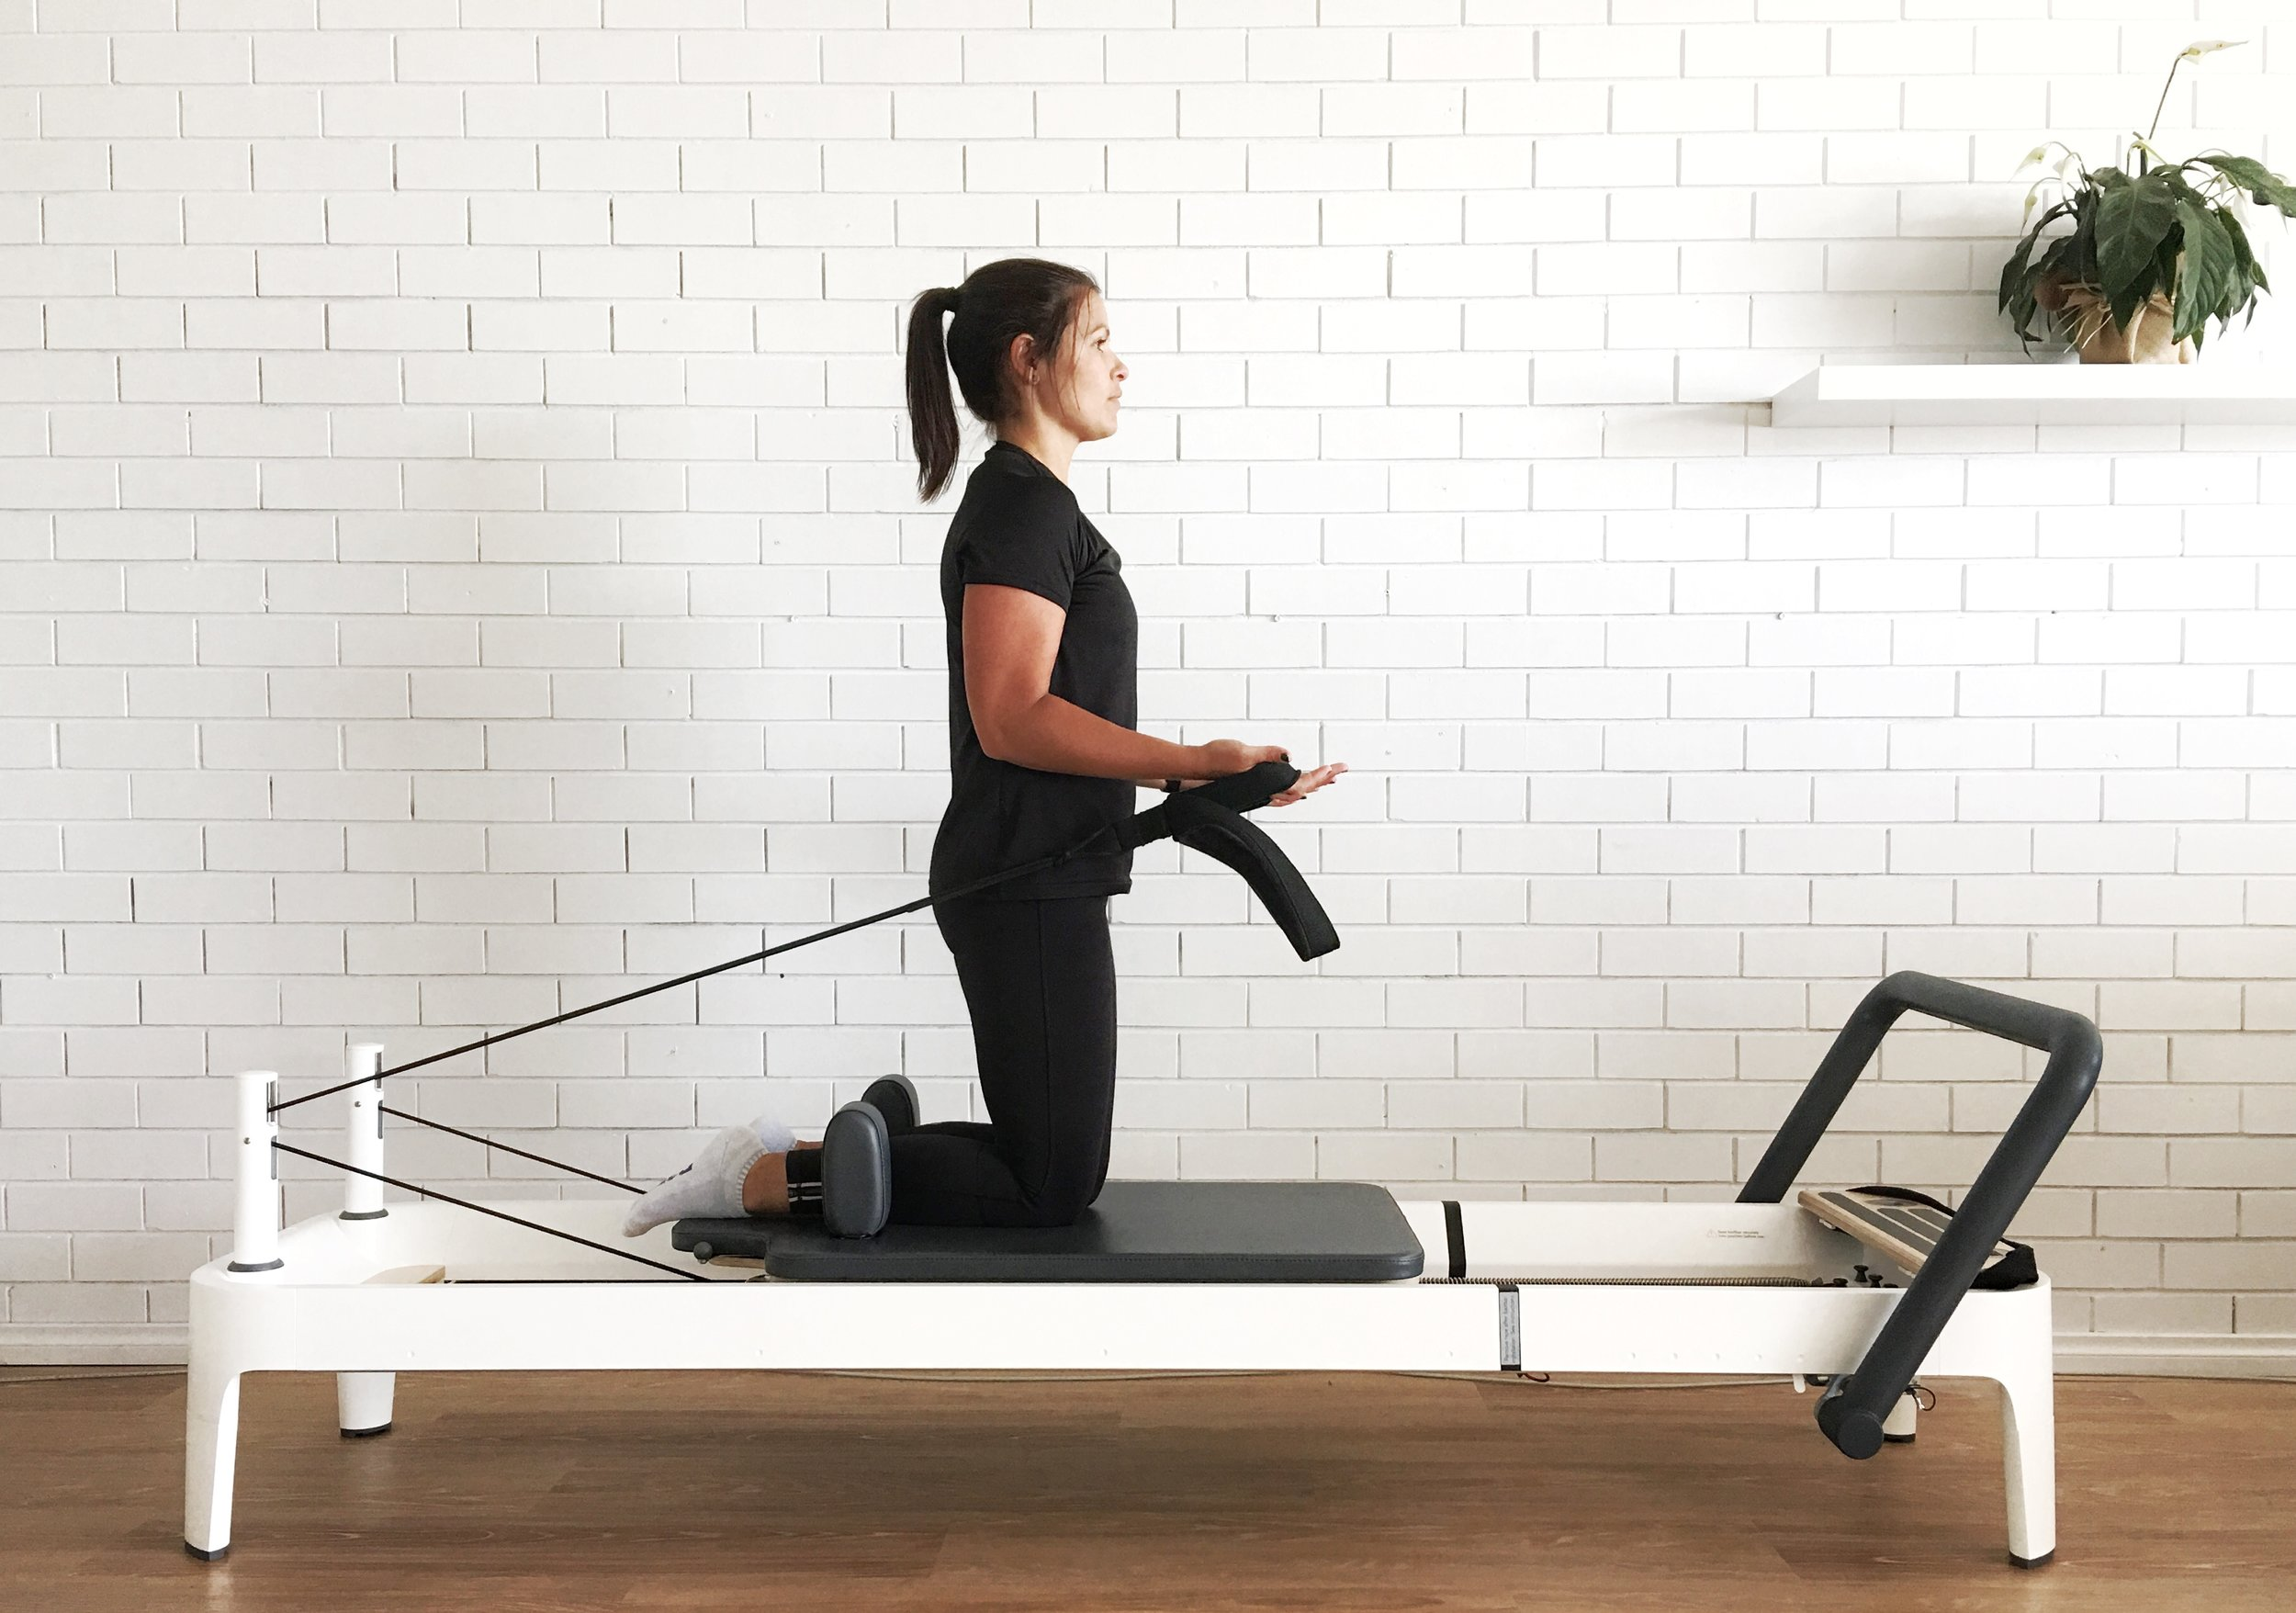 Physiotherapist  Karla  demonstrates a Pilates  Bicep Curl